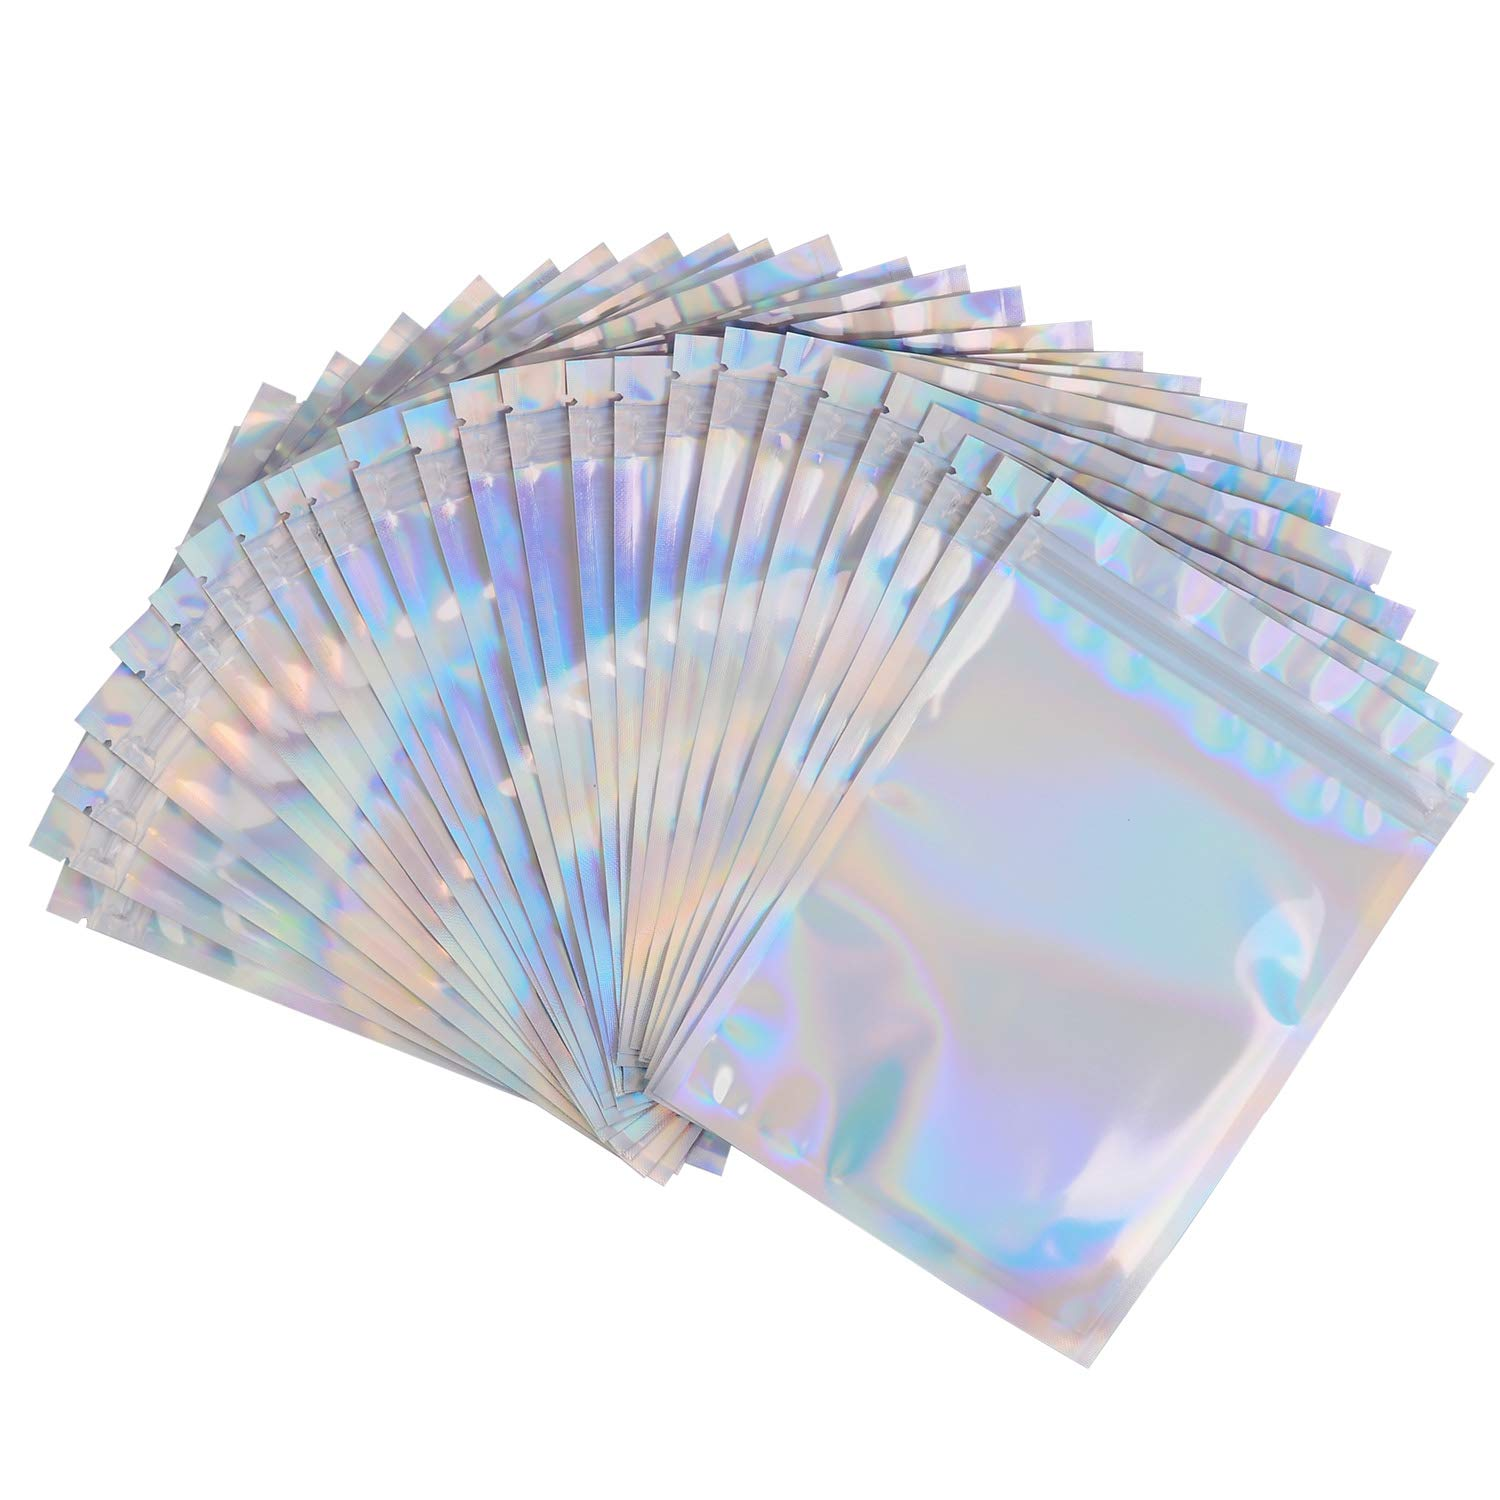 100 Pack Smell Proof Bags - 5x7 Inches Reclosable Mylar Bags Resealable Clear Ziplock FDA Approved Food Safe Holographic Rainbow Color